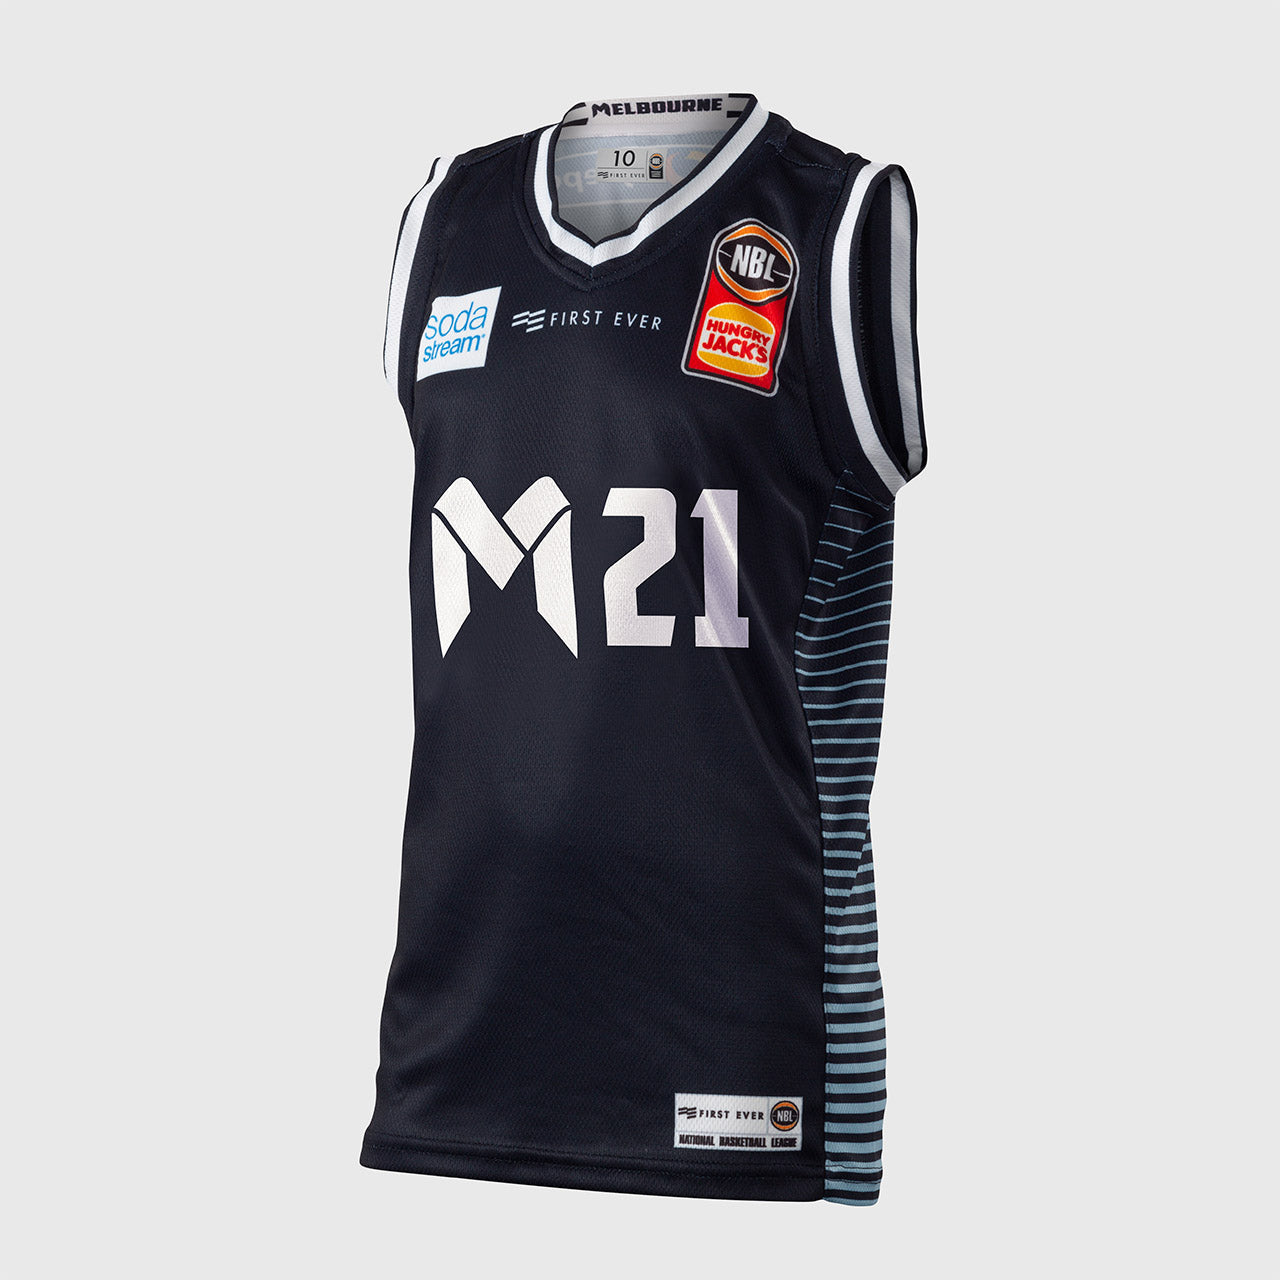 Melbourne United 18/19 Youth Authentic Jersey - Casper Ware Jr.